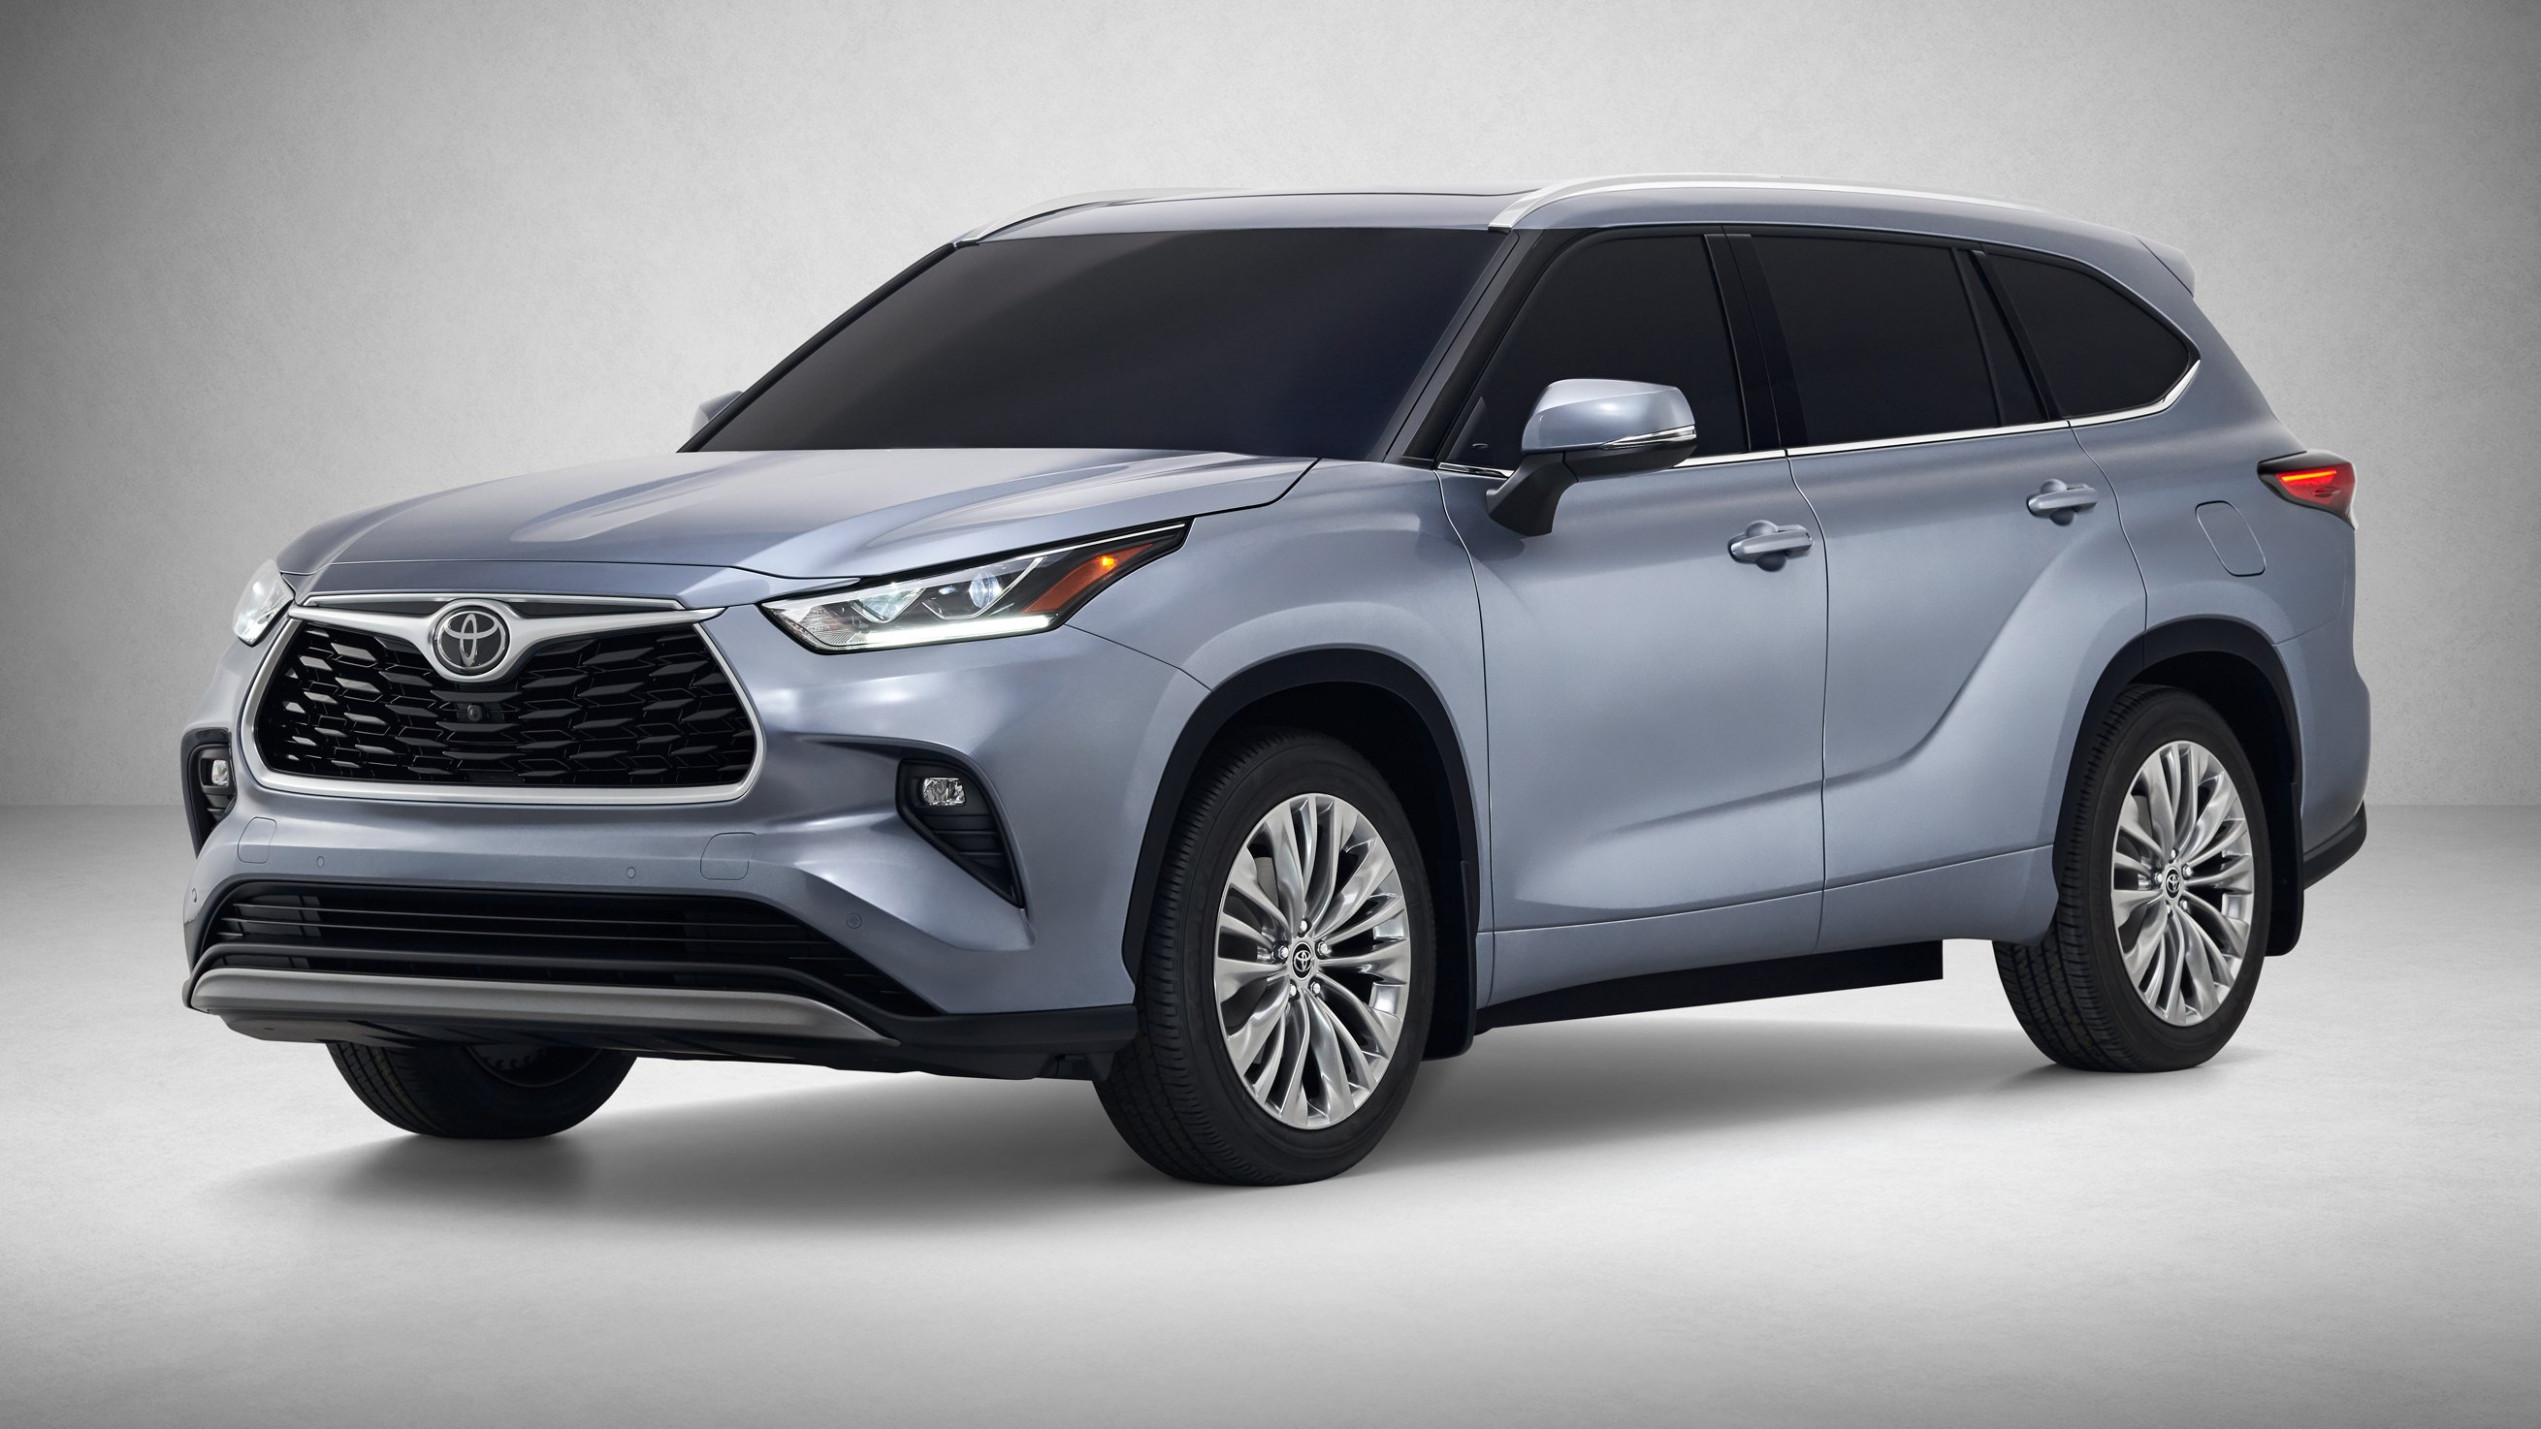 6 Toyota Kluger unveiled, Australia to get hybrid power | CarAdvice